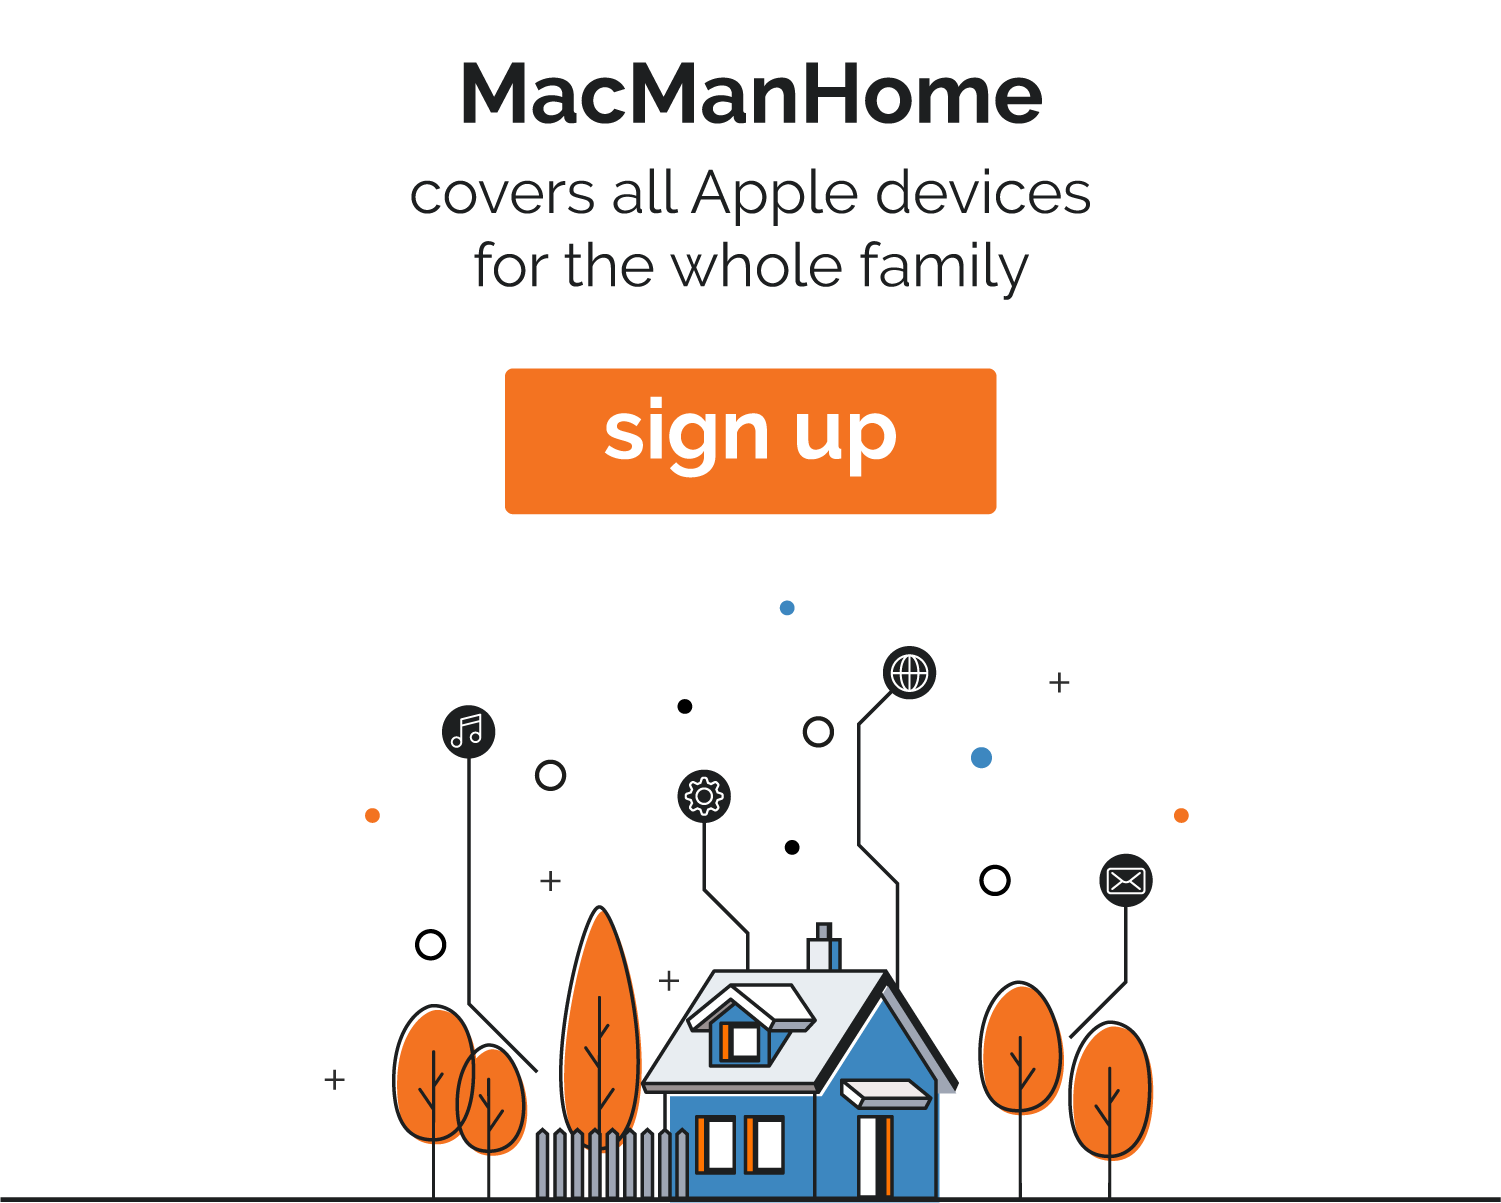 MacMan Home Support